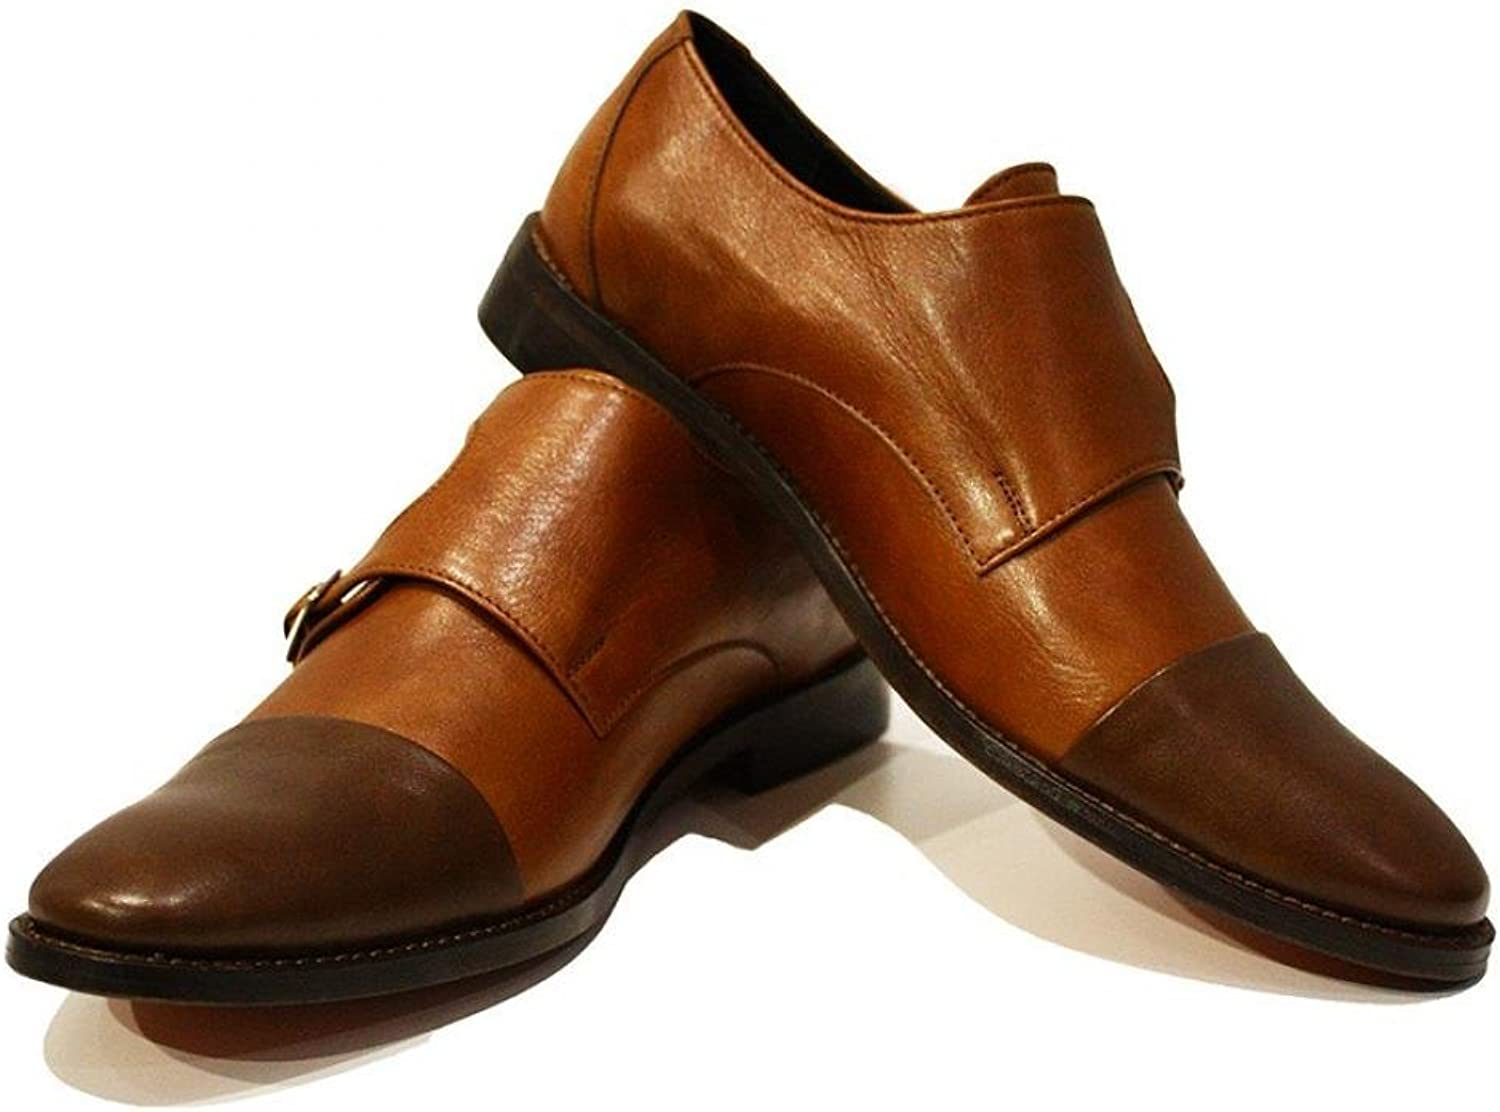 Peppeshoes Modello Tito - Handmade Italian Leather Mens color Brown Monk shoes Dress Oxfords - Cowhide Smooth Leather - Buckle